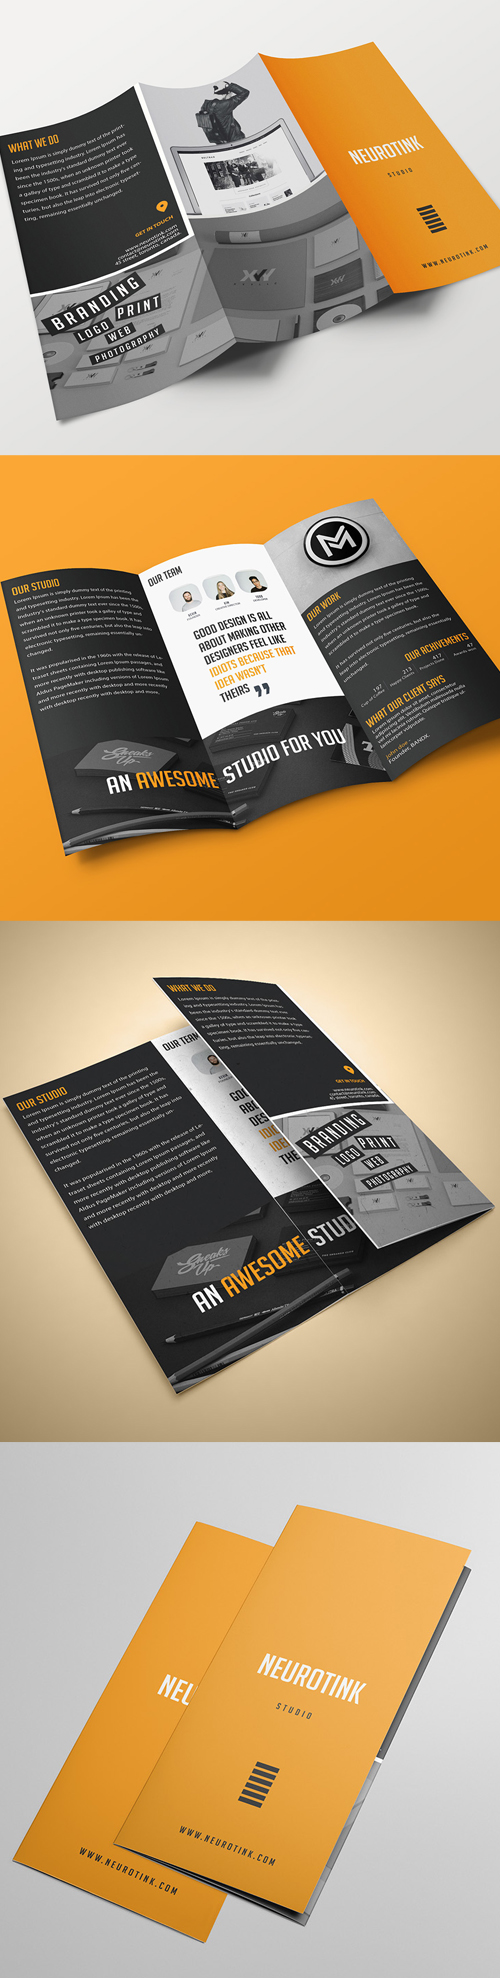 Agency Tri-fold Brochure Template